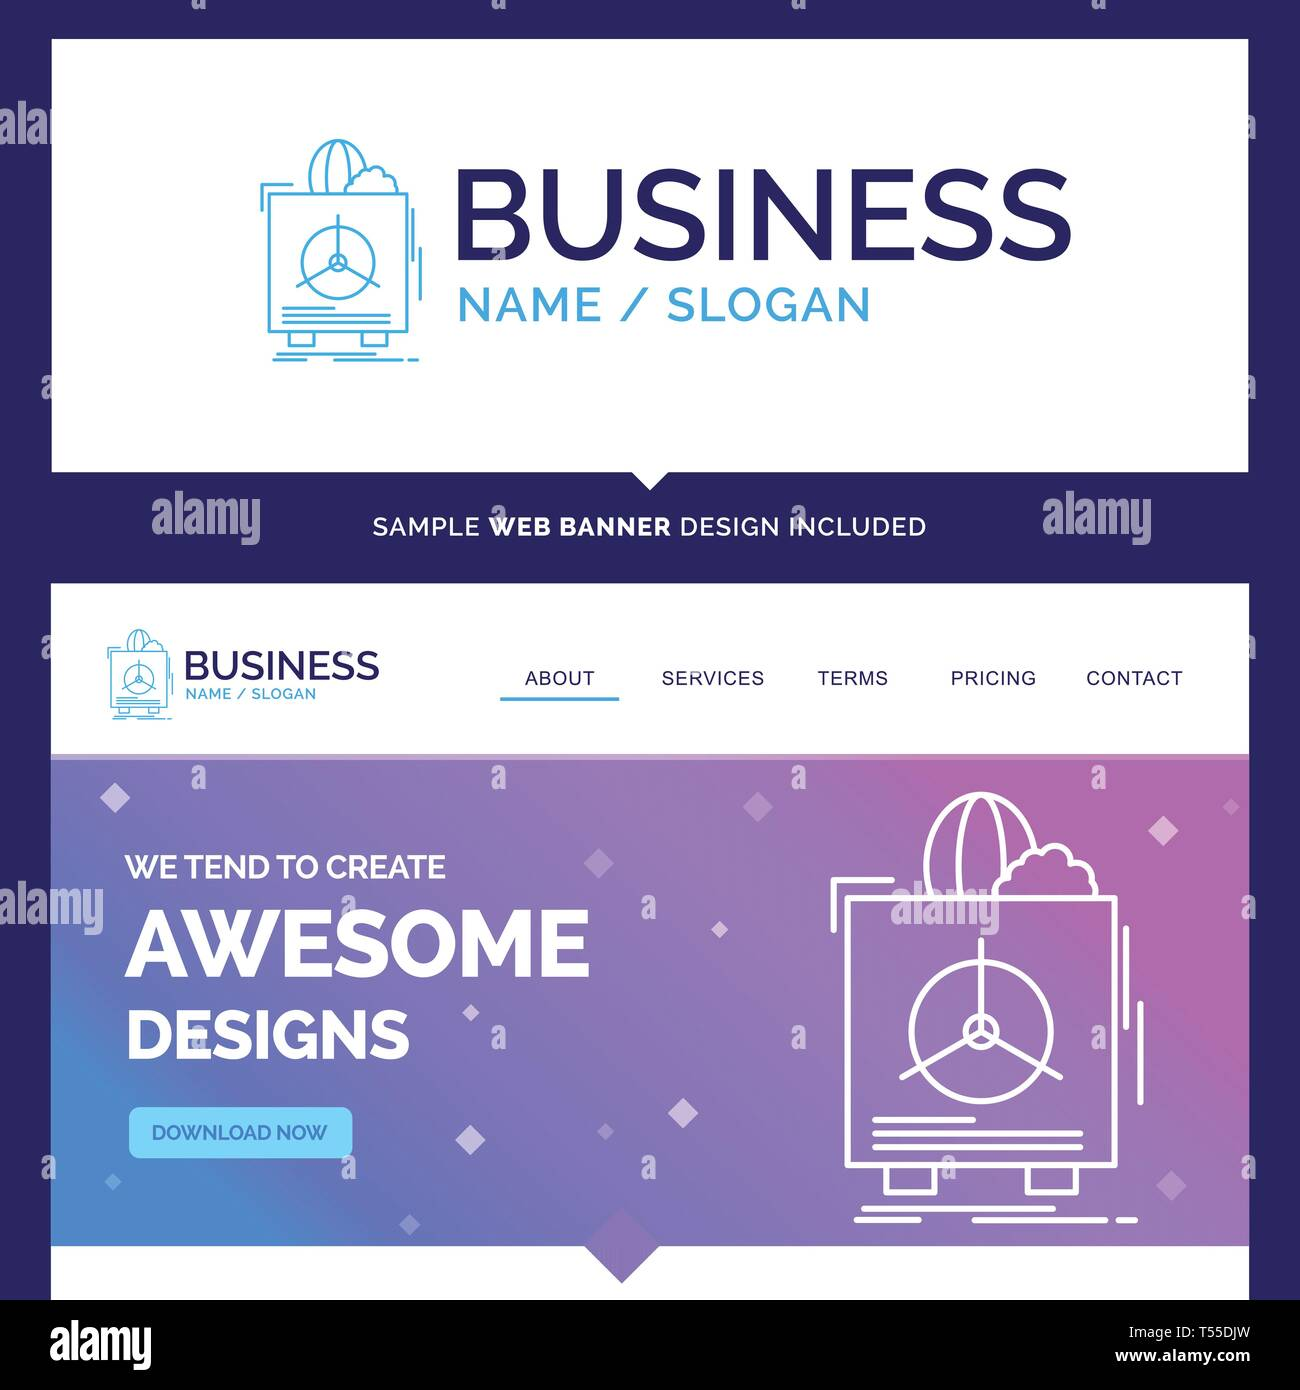 Beautiful Business Concept Brand Name insurance, Fragile, product, warranty, health Logo Design and Pink and Blue background Website Header Design tem - Stock Image